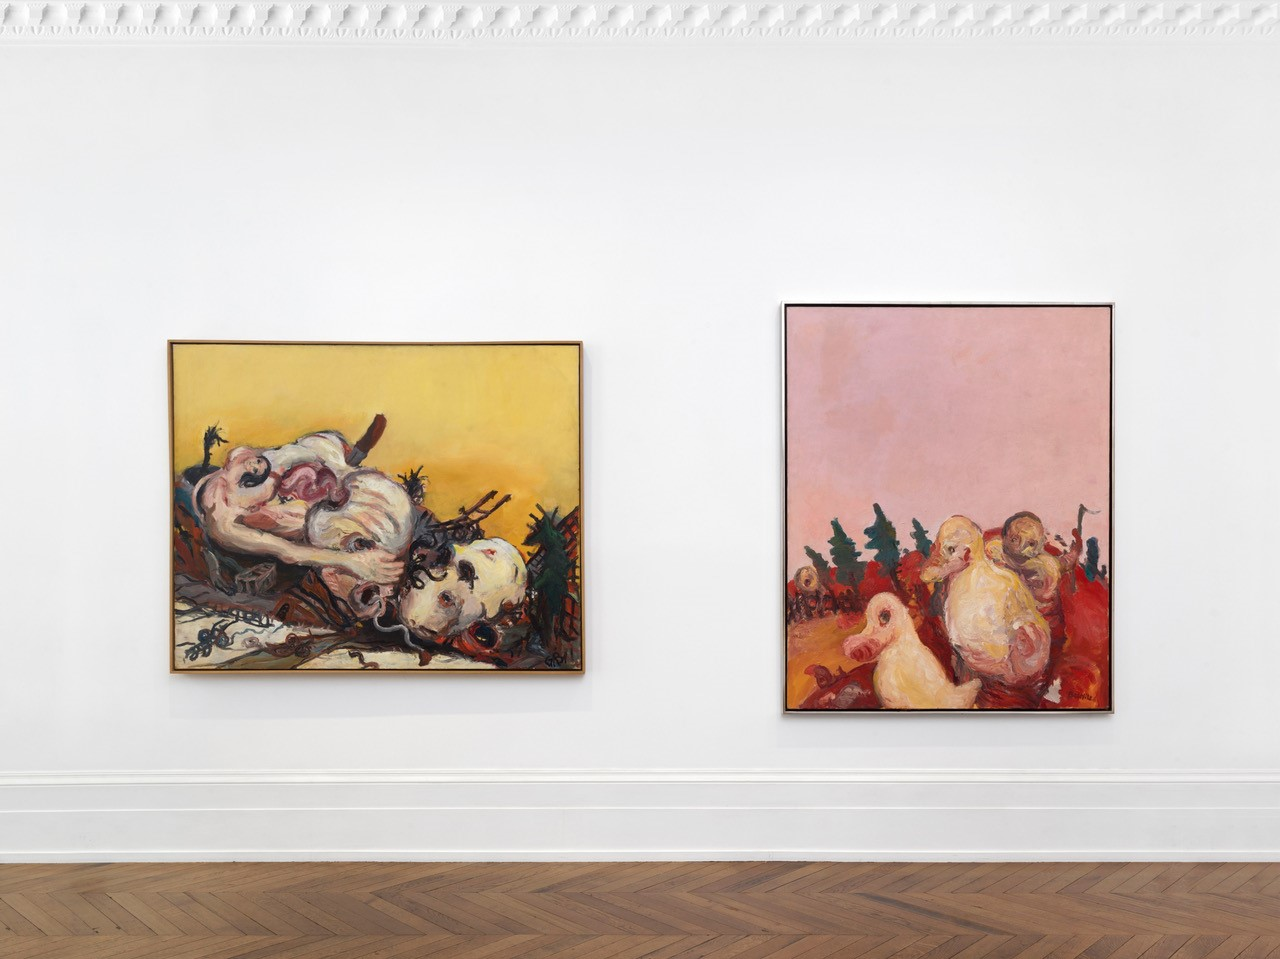 Courtesy Michael Werner Gallery, New York and London.